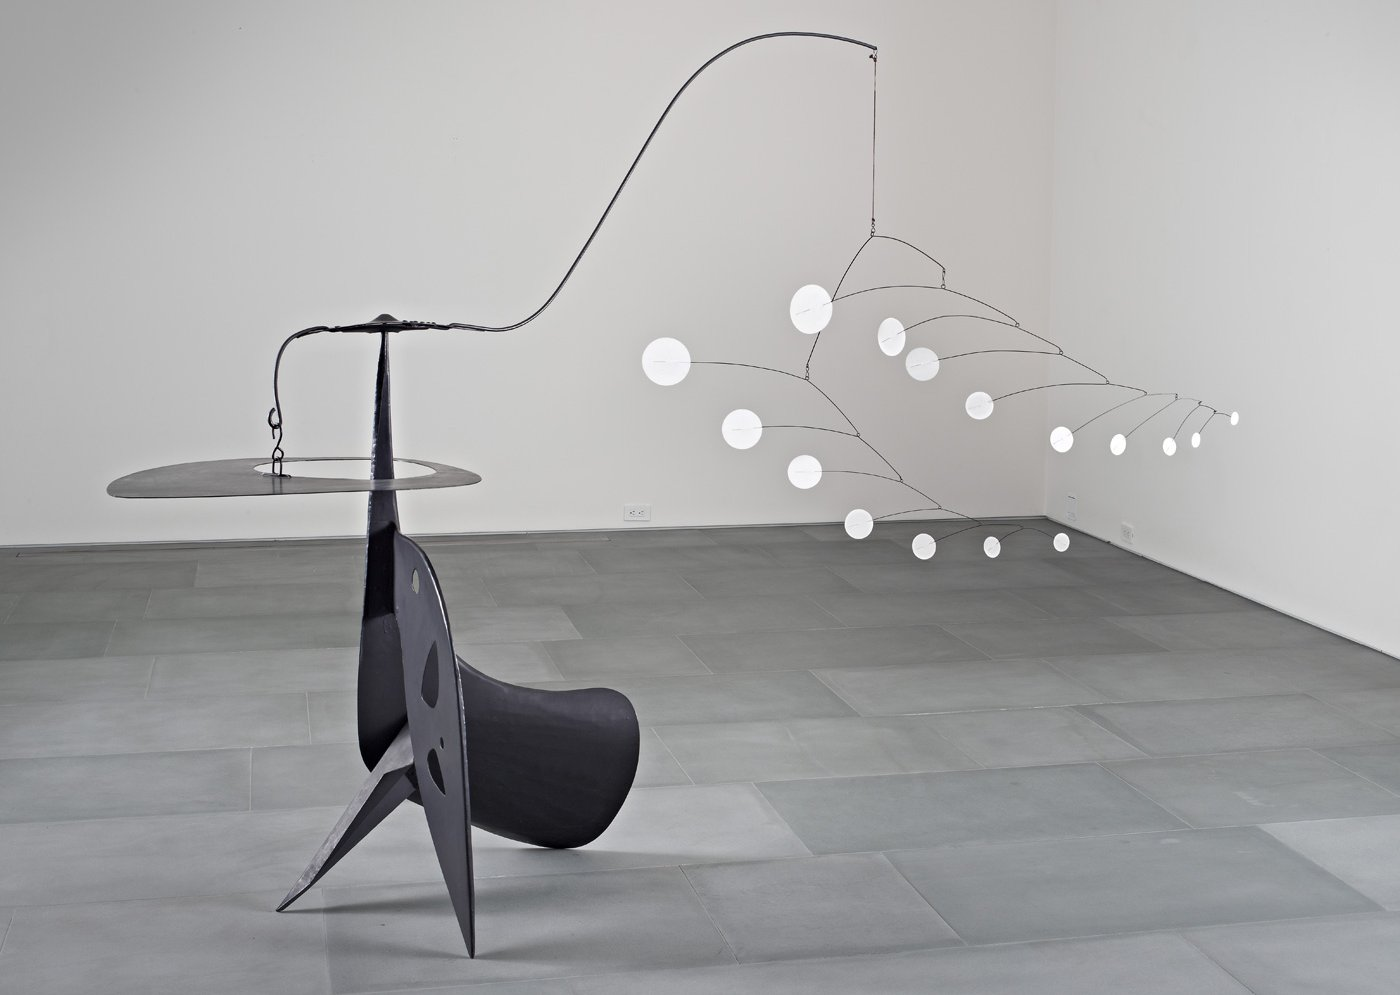 Alexander Calder – kinetic sculpture